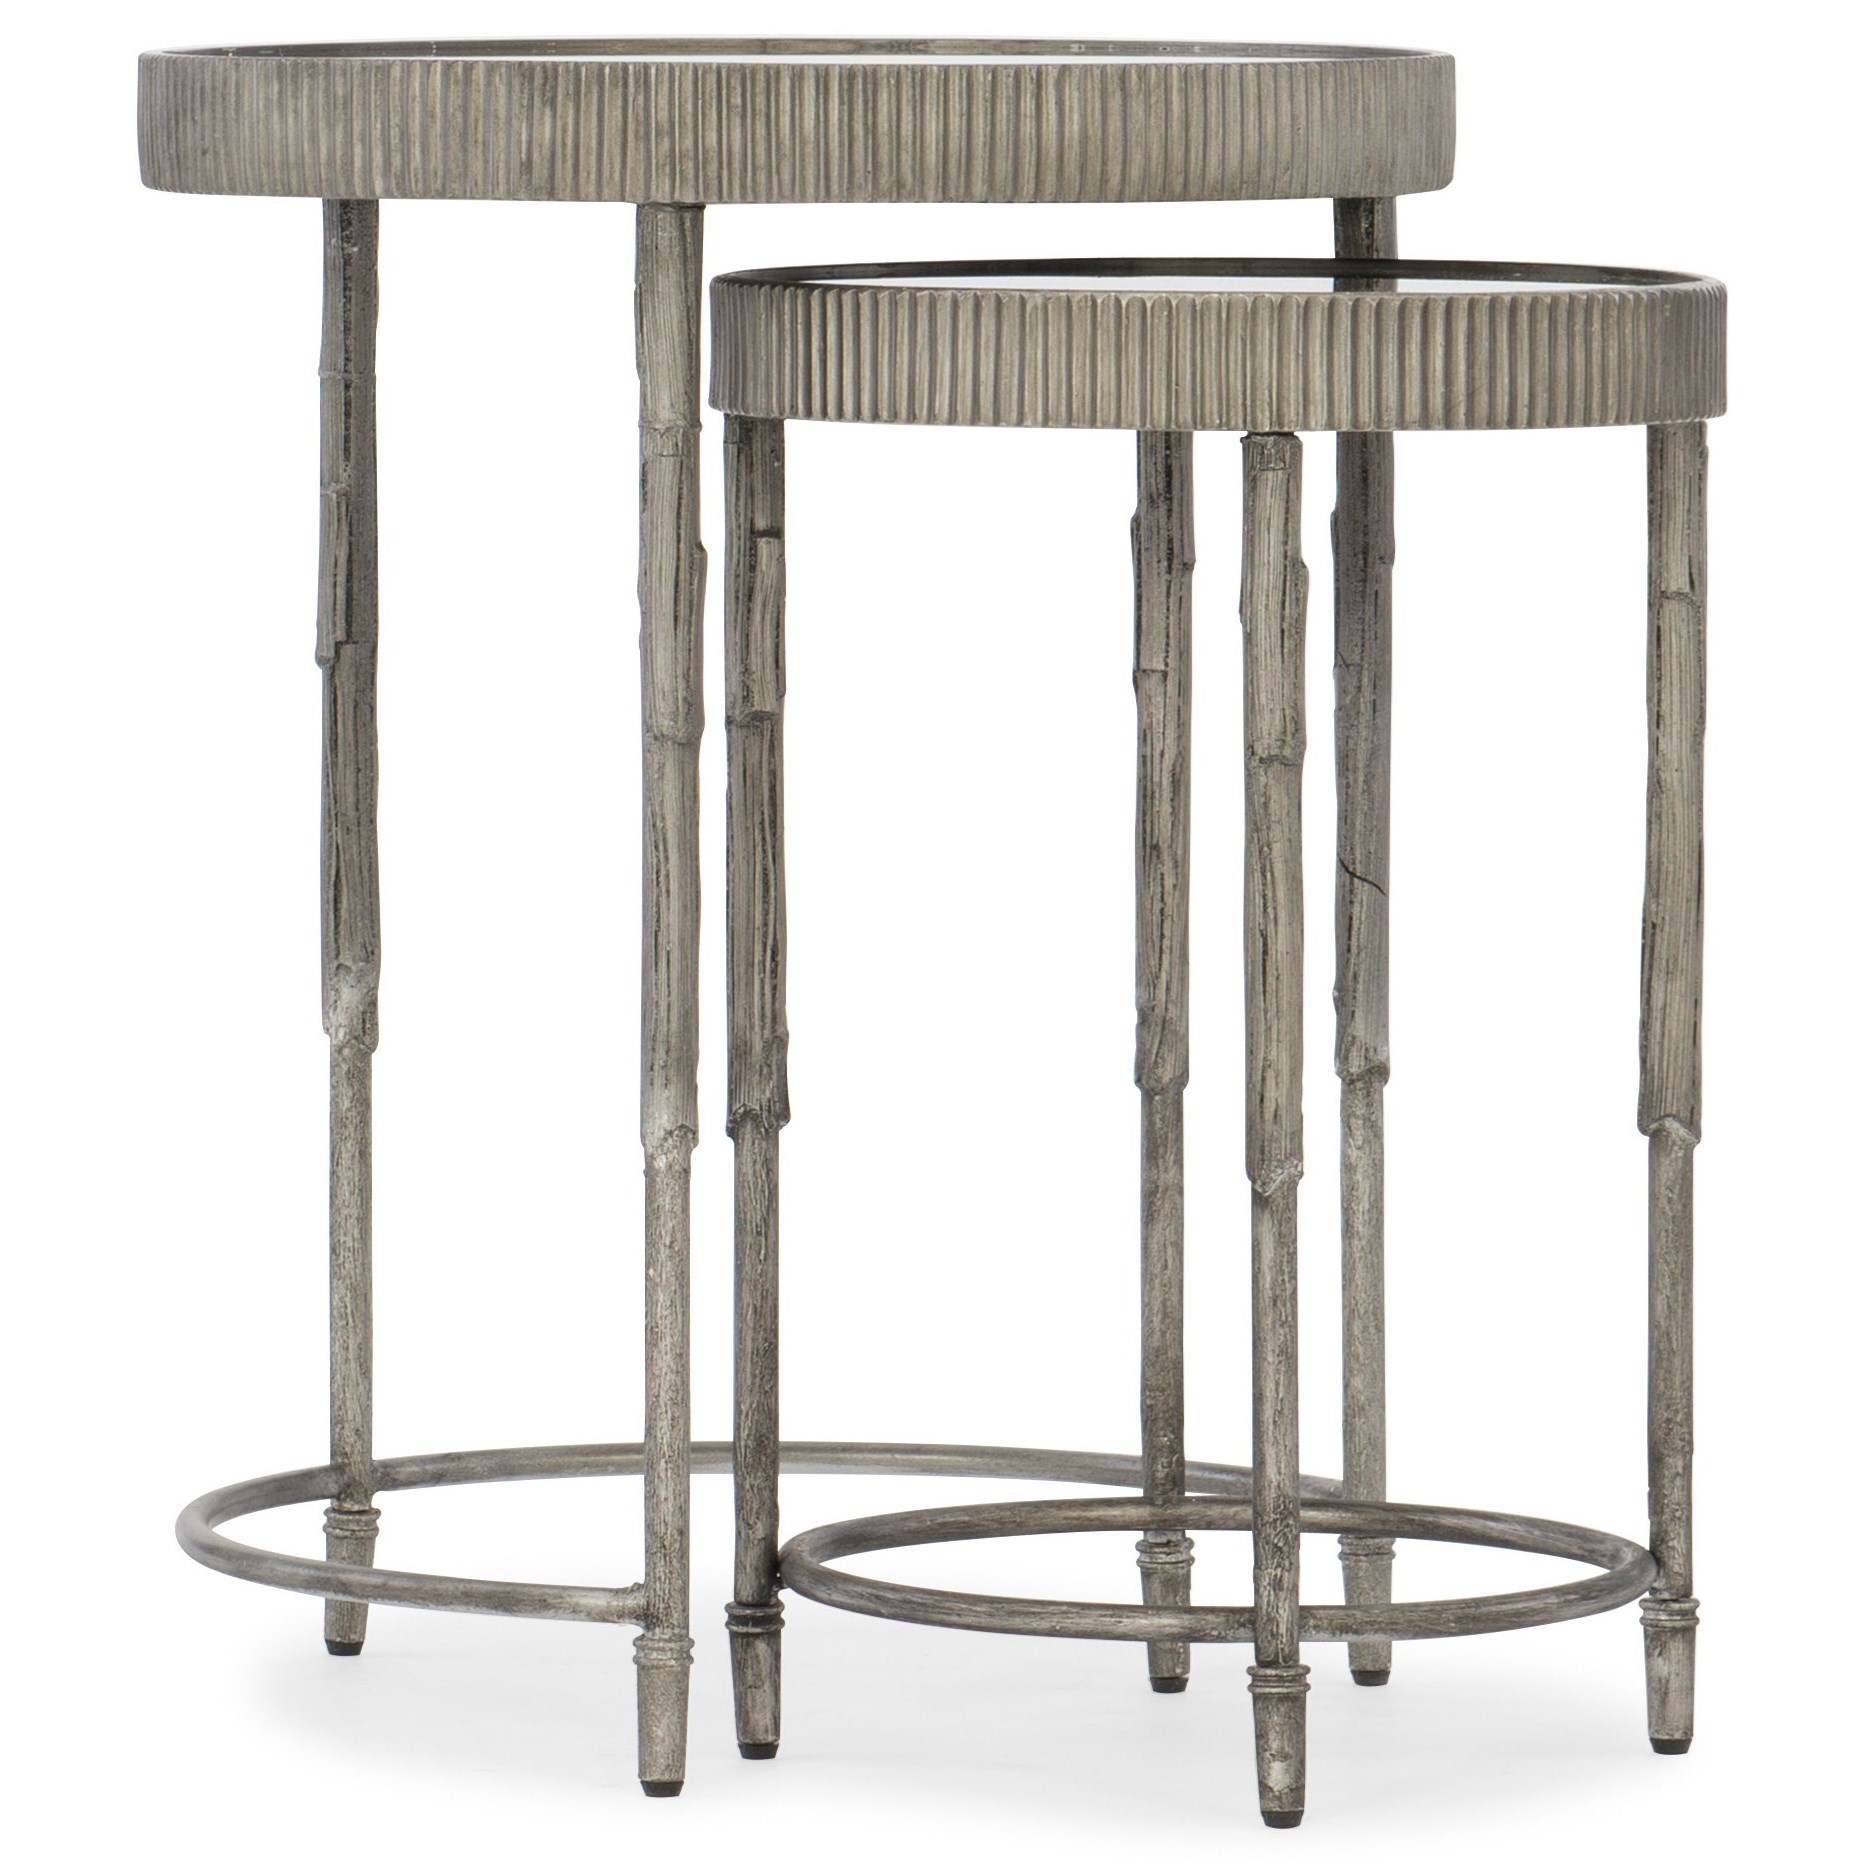 Contemporary Accent Nesting Tables with Mirrored Top